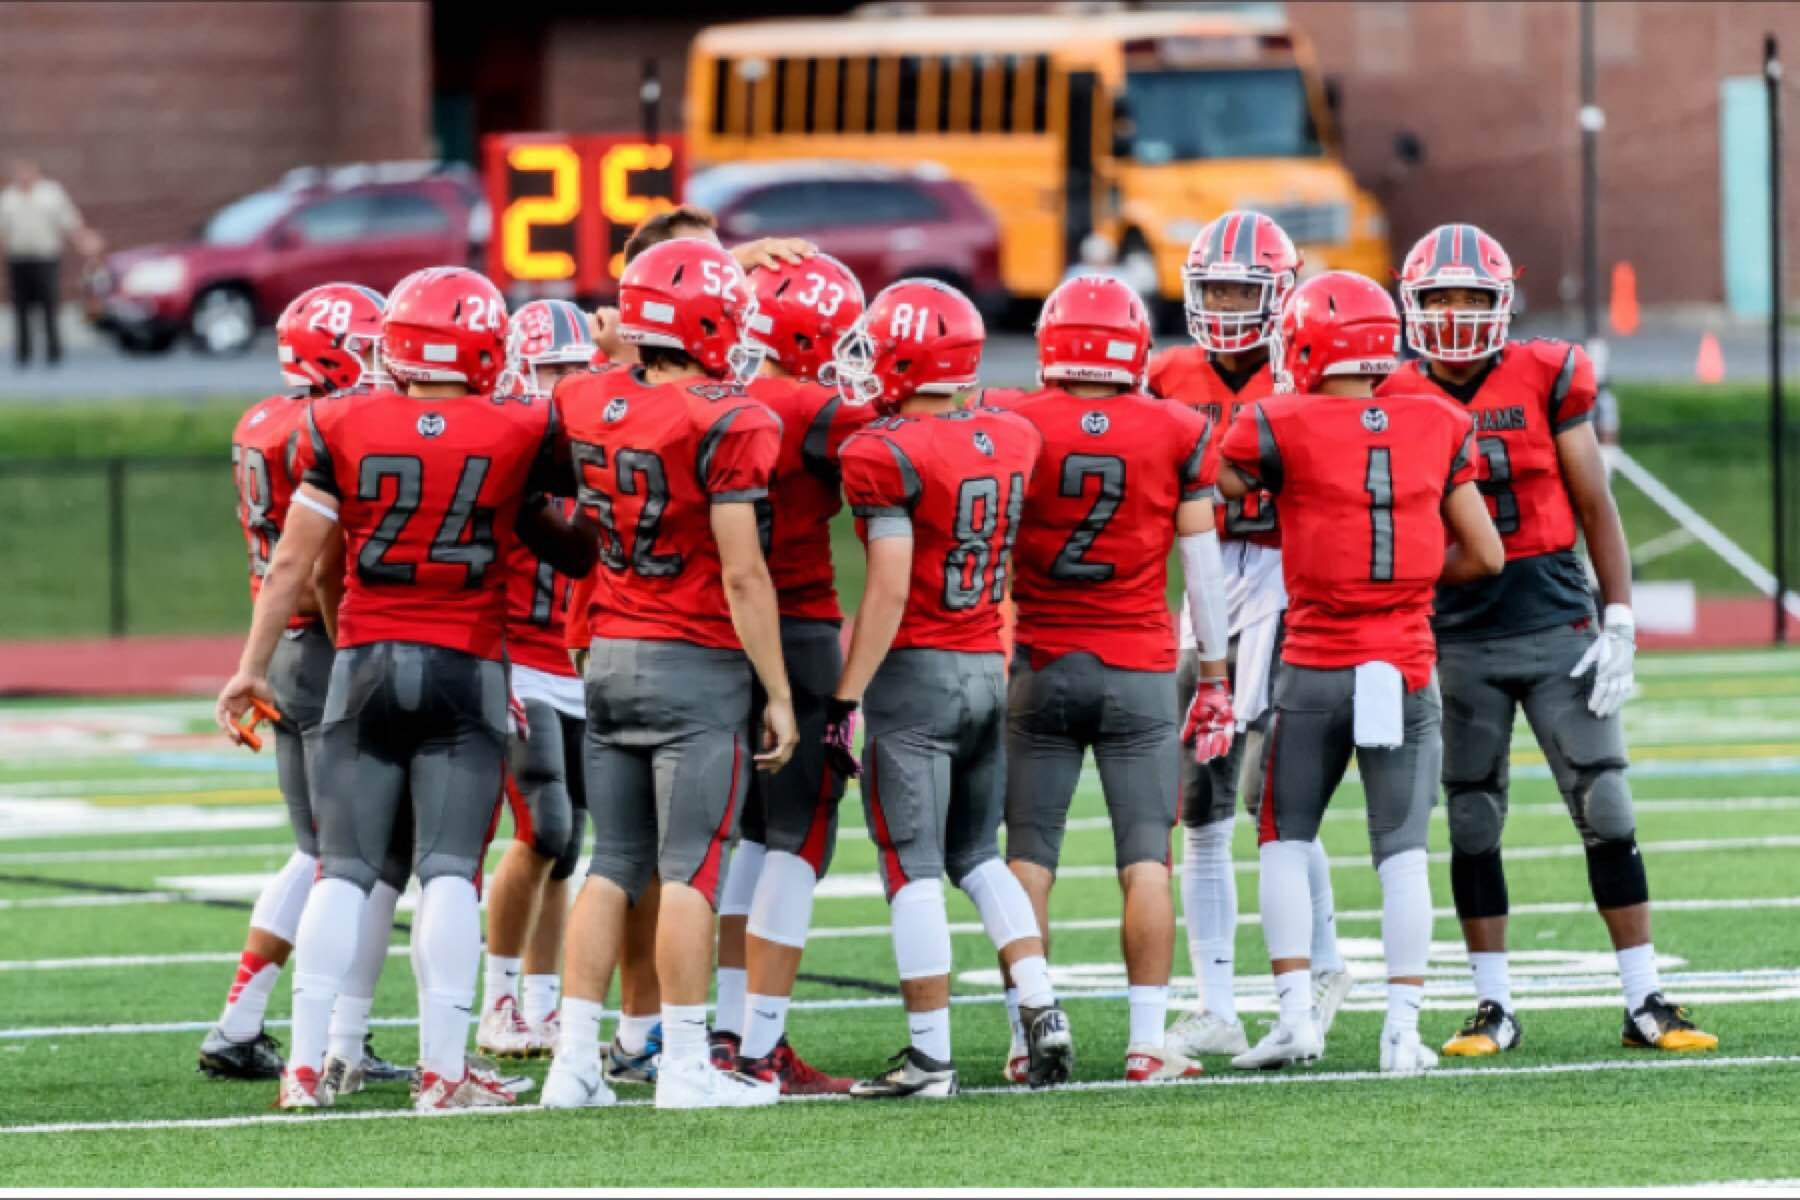 Members of the Jamesville-DeWitt High School Varsity Football team gather in a huddle before a home game